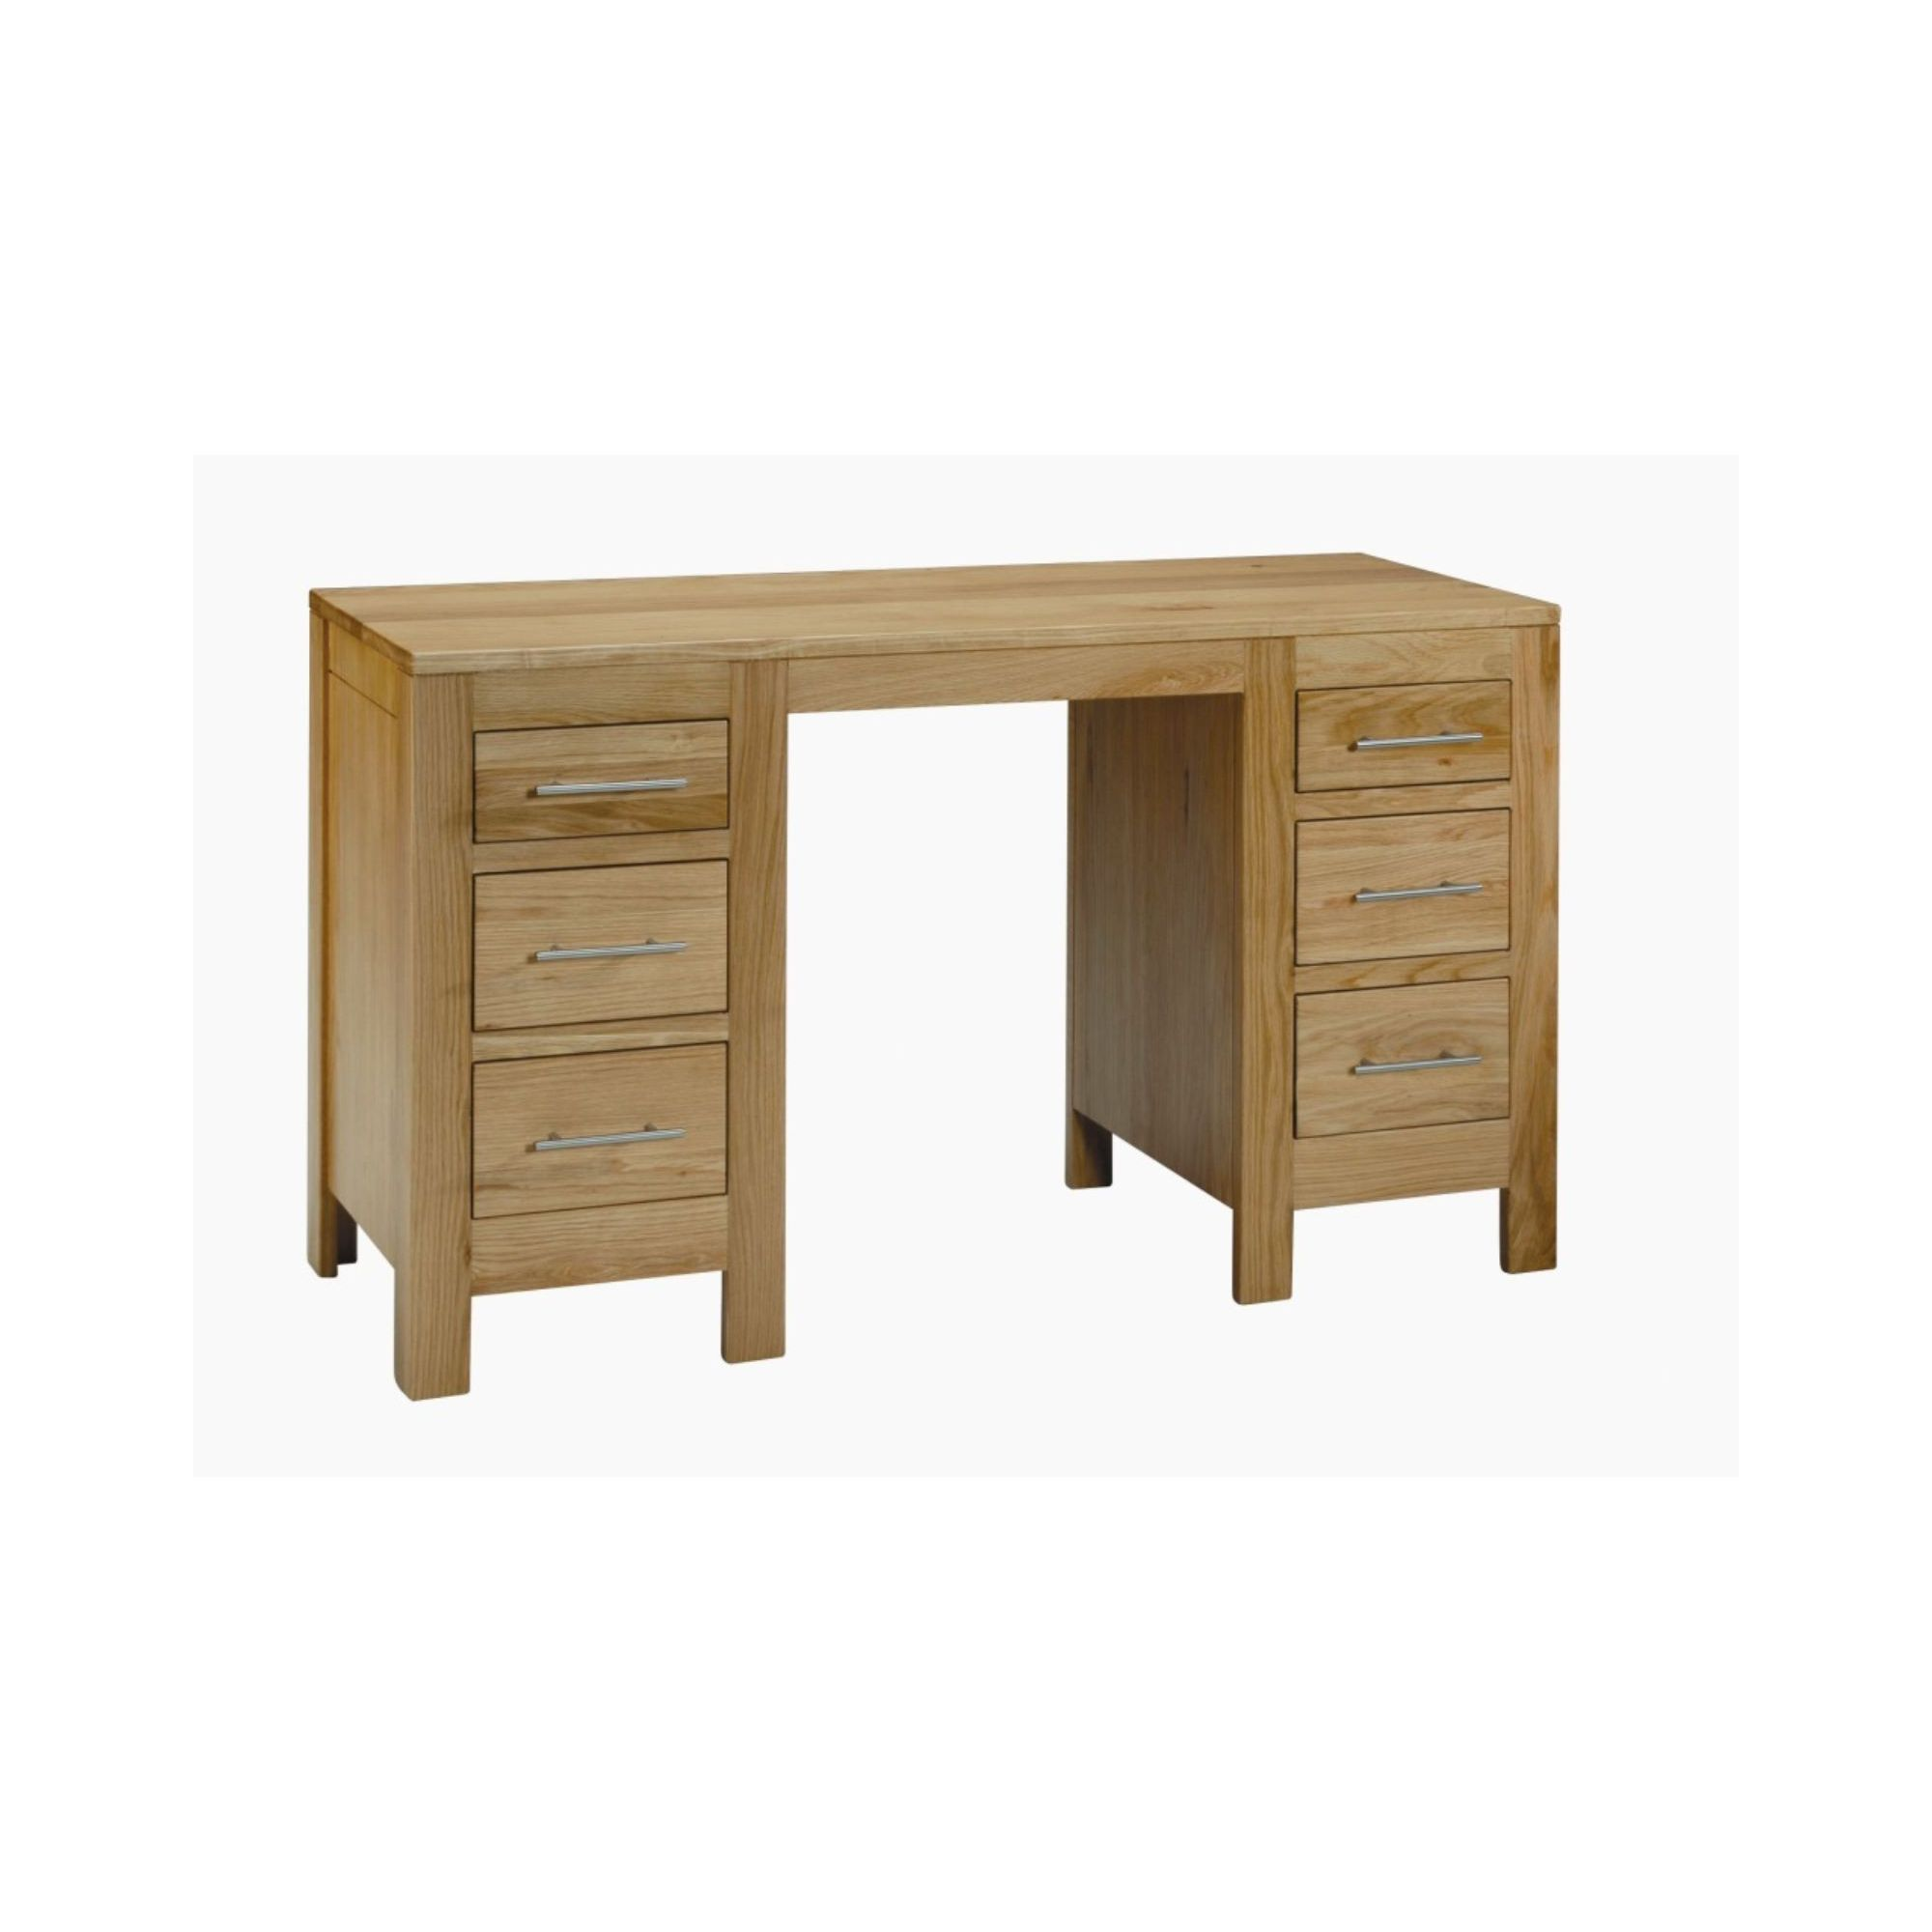 Kelburn Furniture Milano Double Pedestal Dressing Table at Tesco Direct